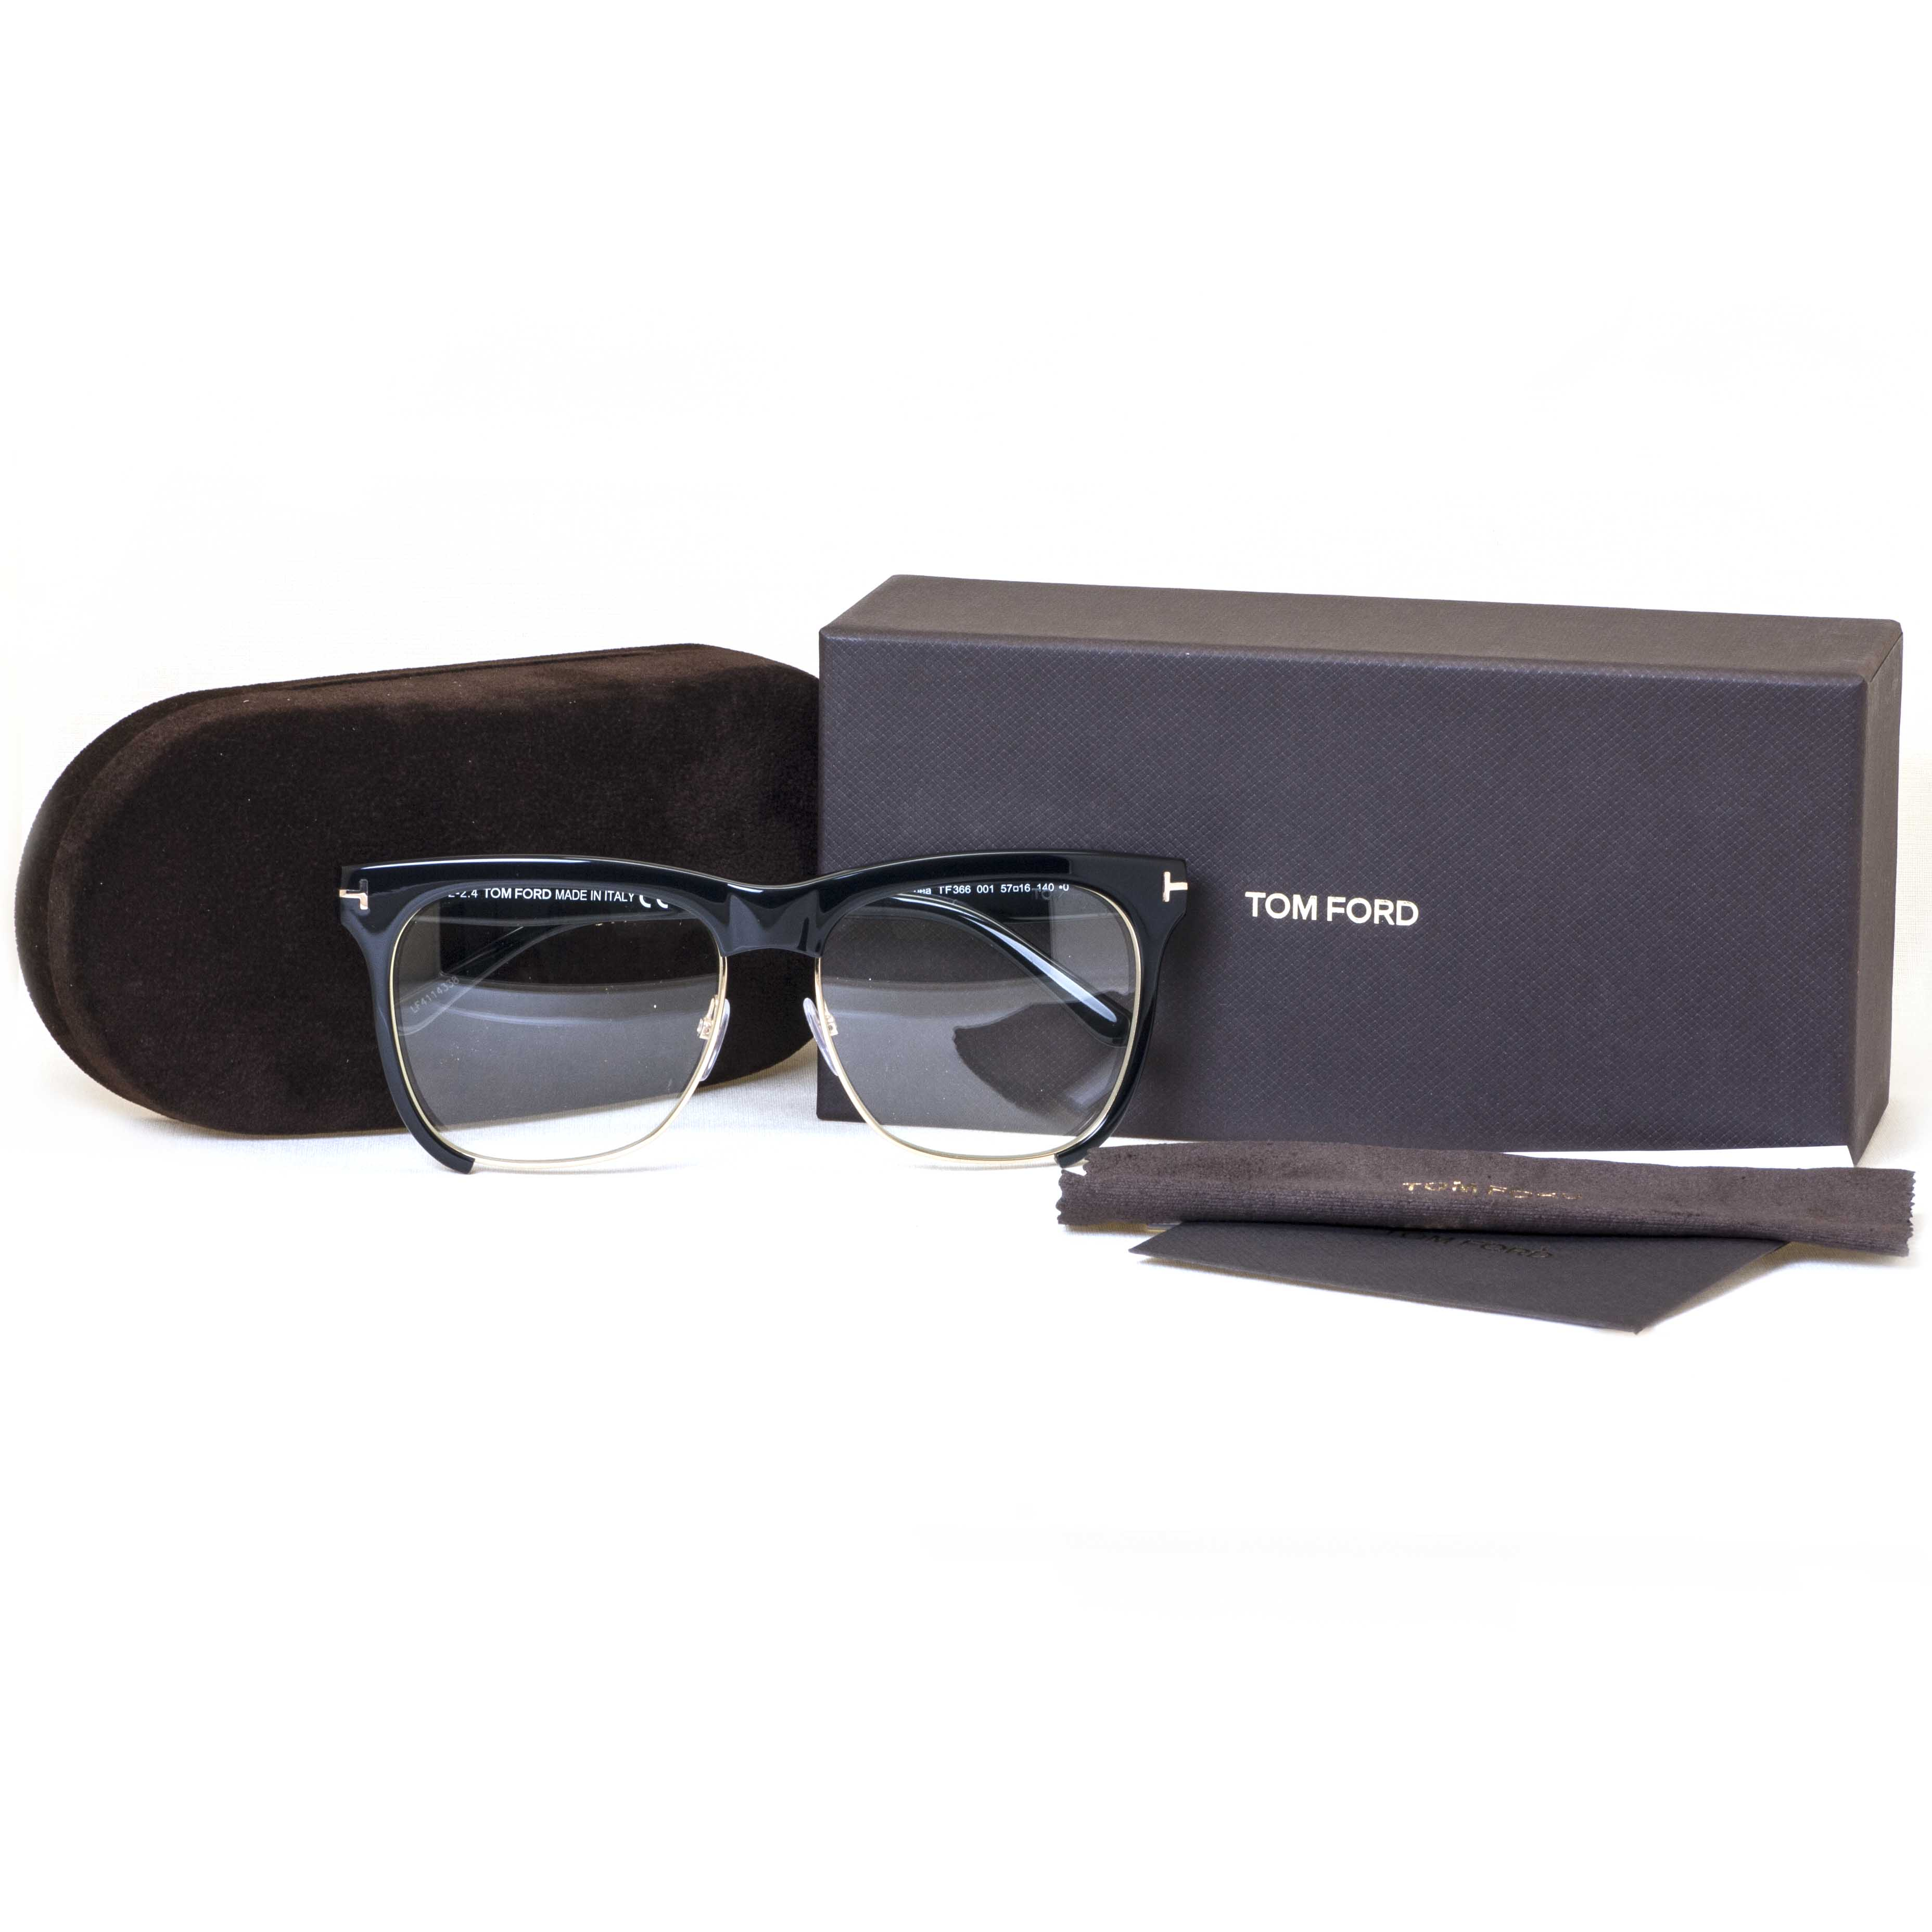 226cc48ec312 Tom Ford - Tom Ford TF 366 001 Shiny Black Gold Frames Square Women s  Eyeglasses 57mm - Walmart.com